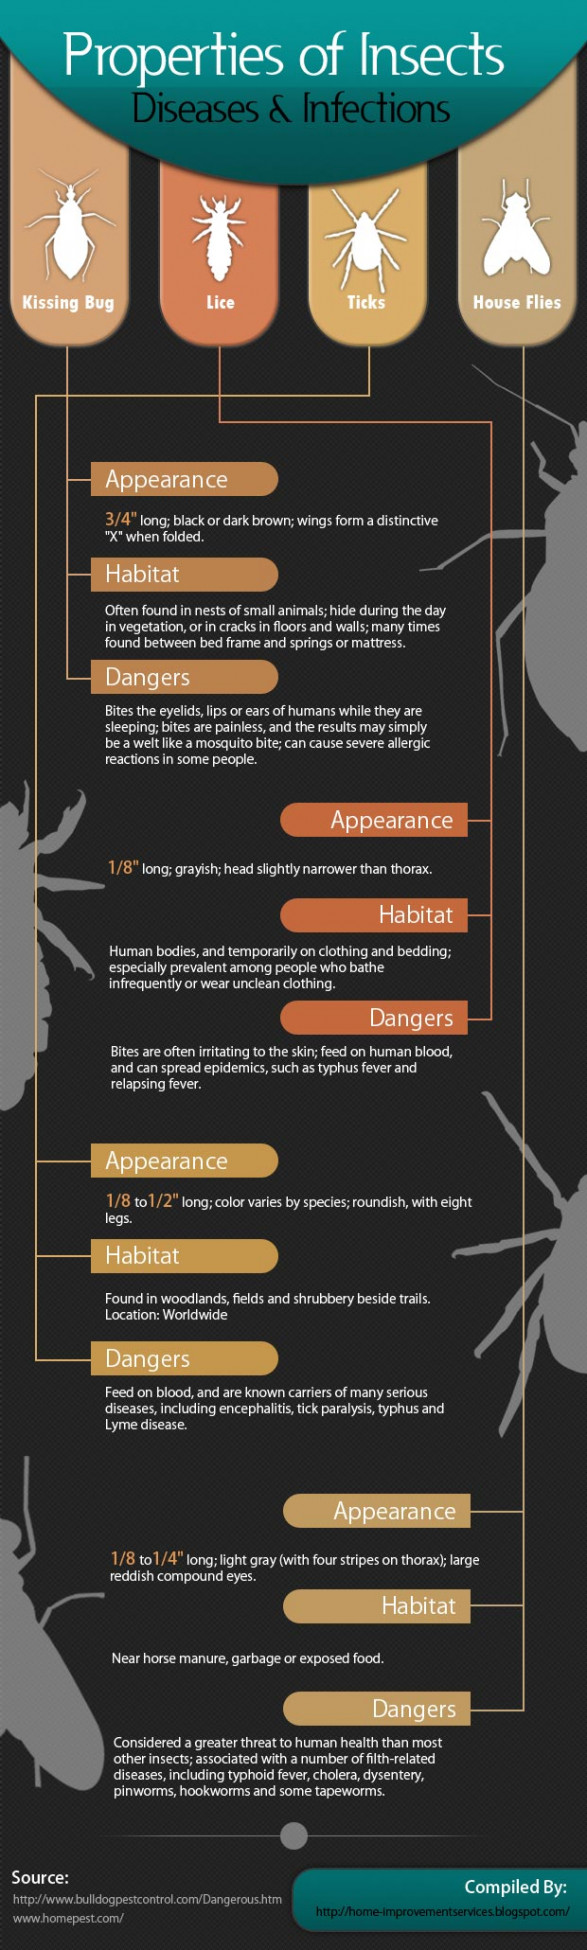 Properties of Insect Diseases and Infections [Infographic]